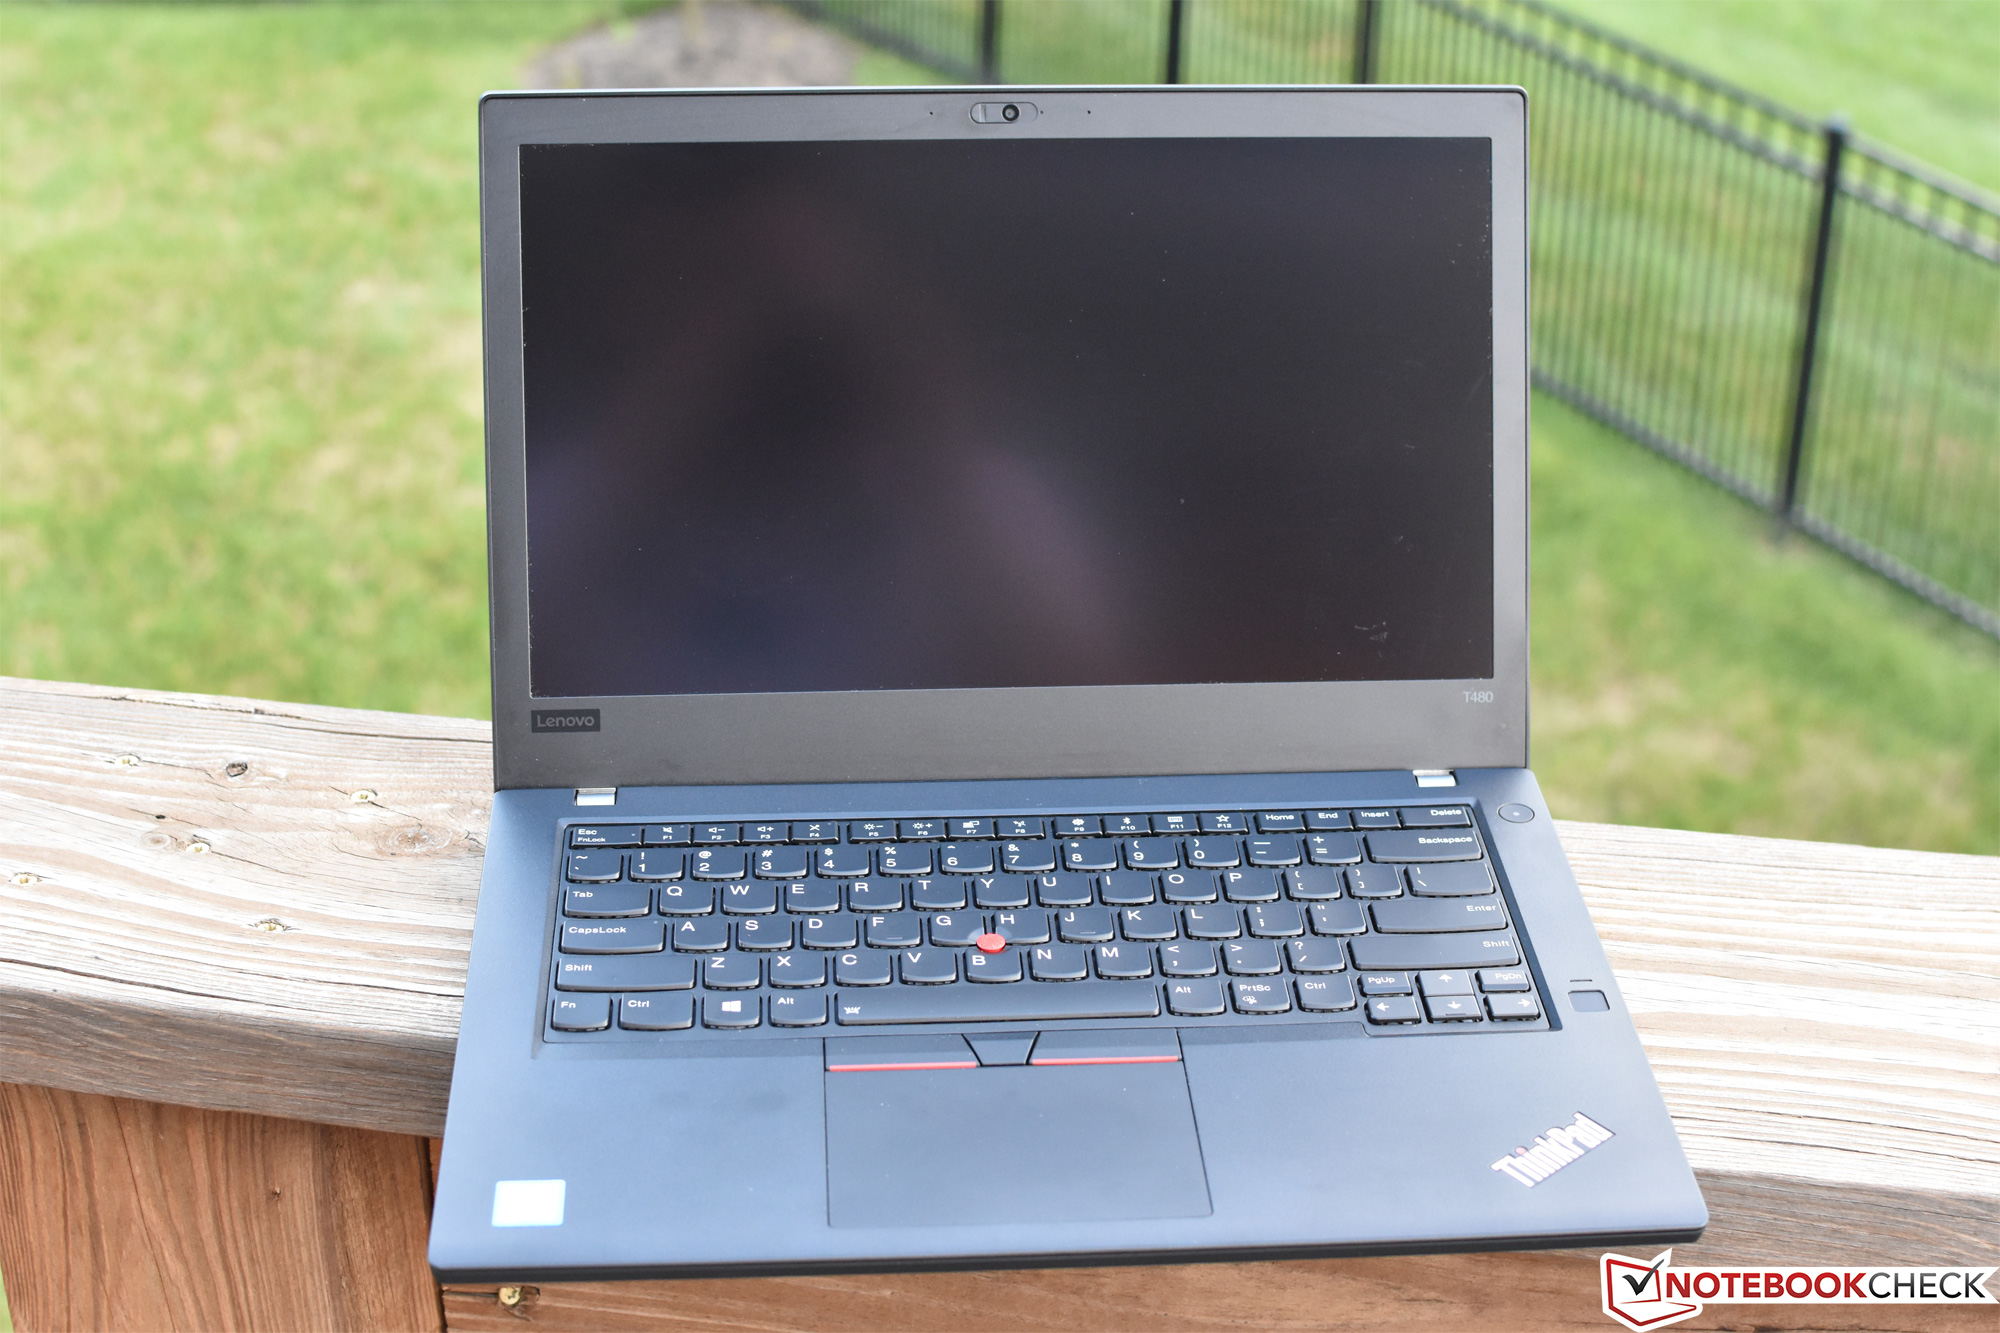 Lenovo ThinkPad T480 (Core i7-8650U, FHD) Laptop Review